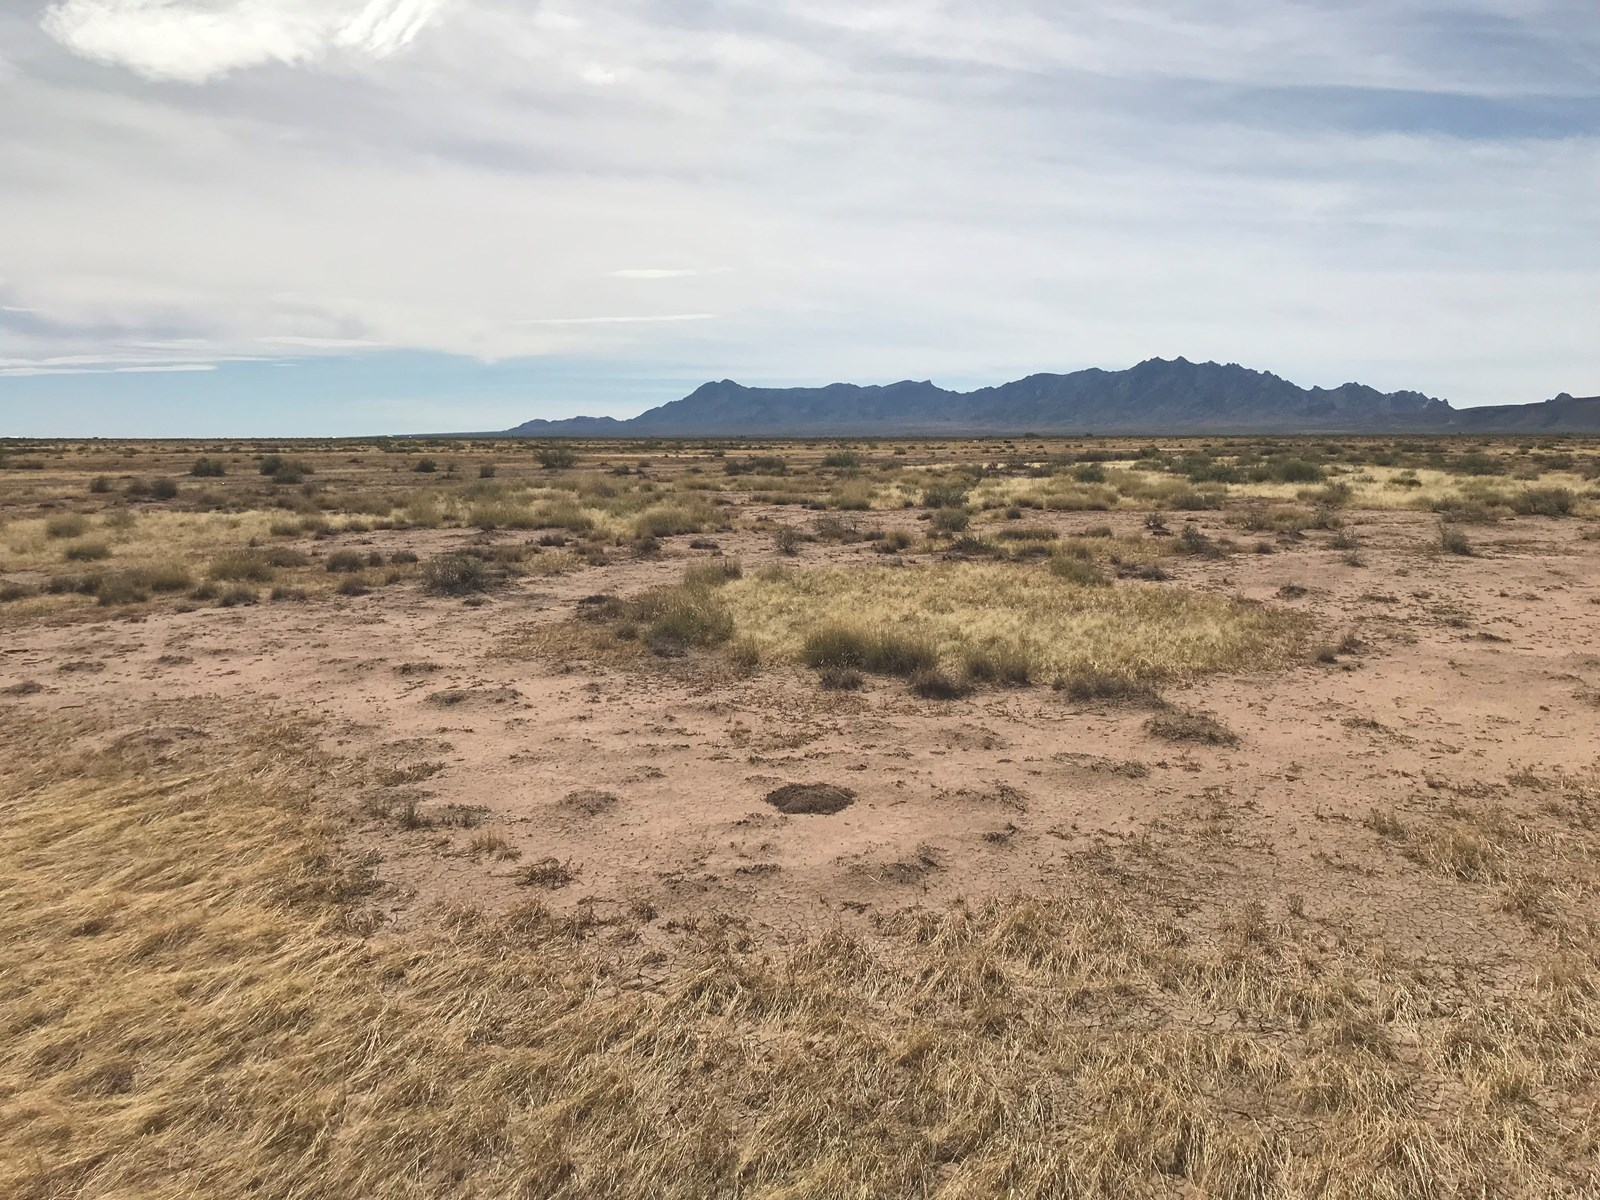 Land for Sale in Deming New Mexico